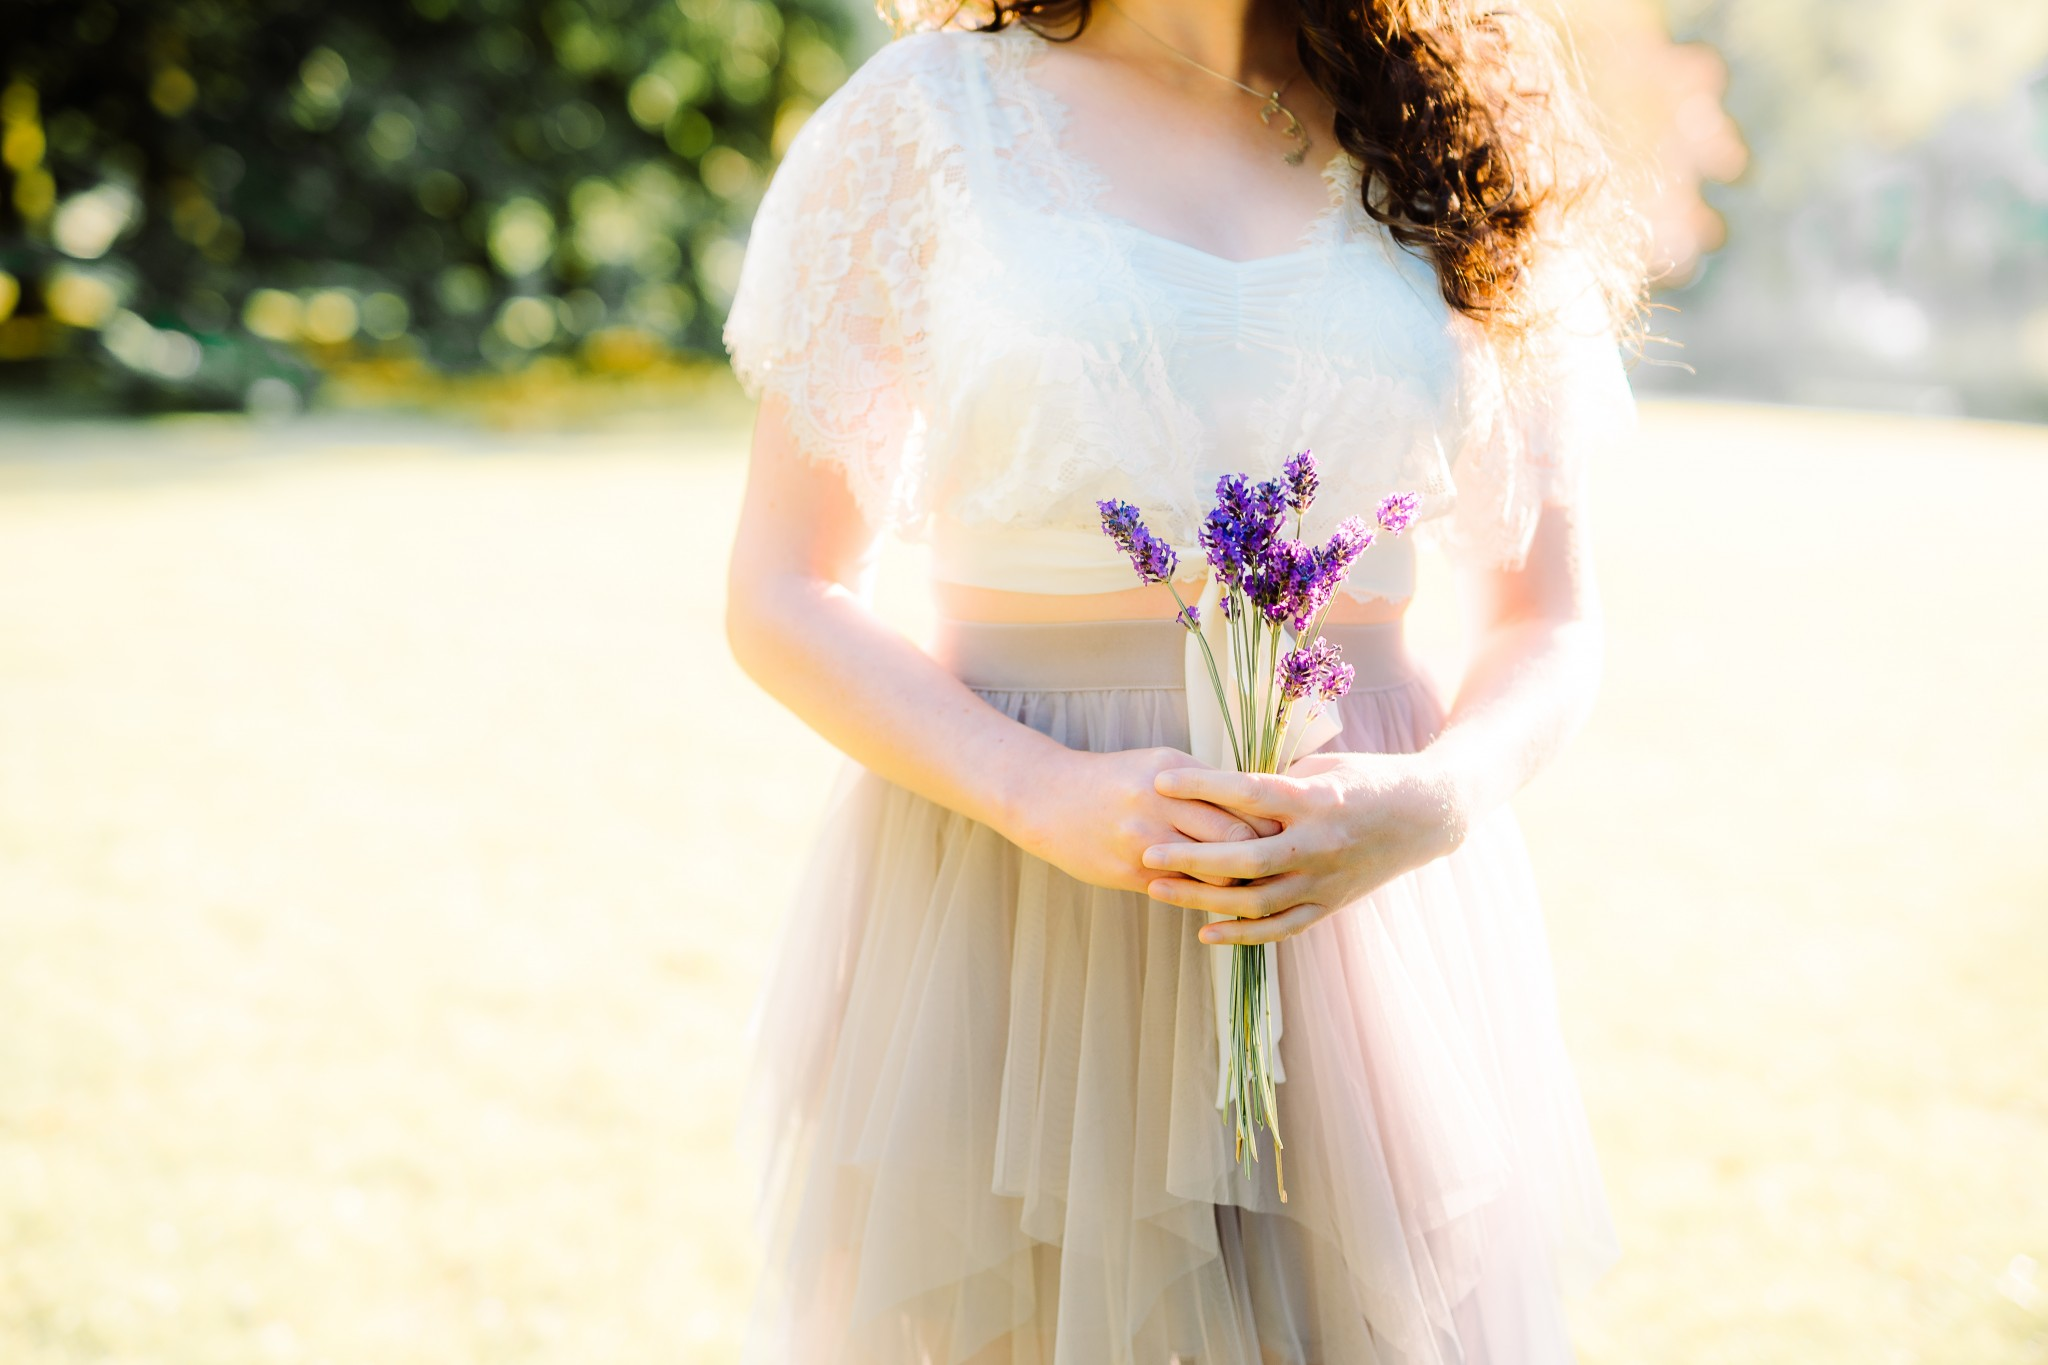 A fine art fairytale image of a girl with dark curly hair, wearing a chiffon skirt and lace top, holding some lavender in front of her